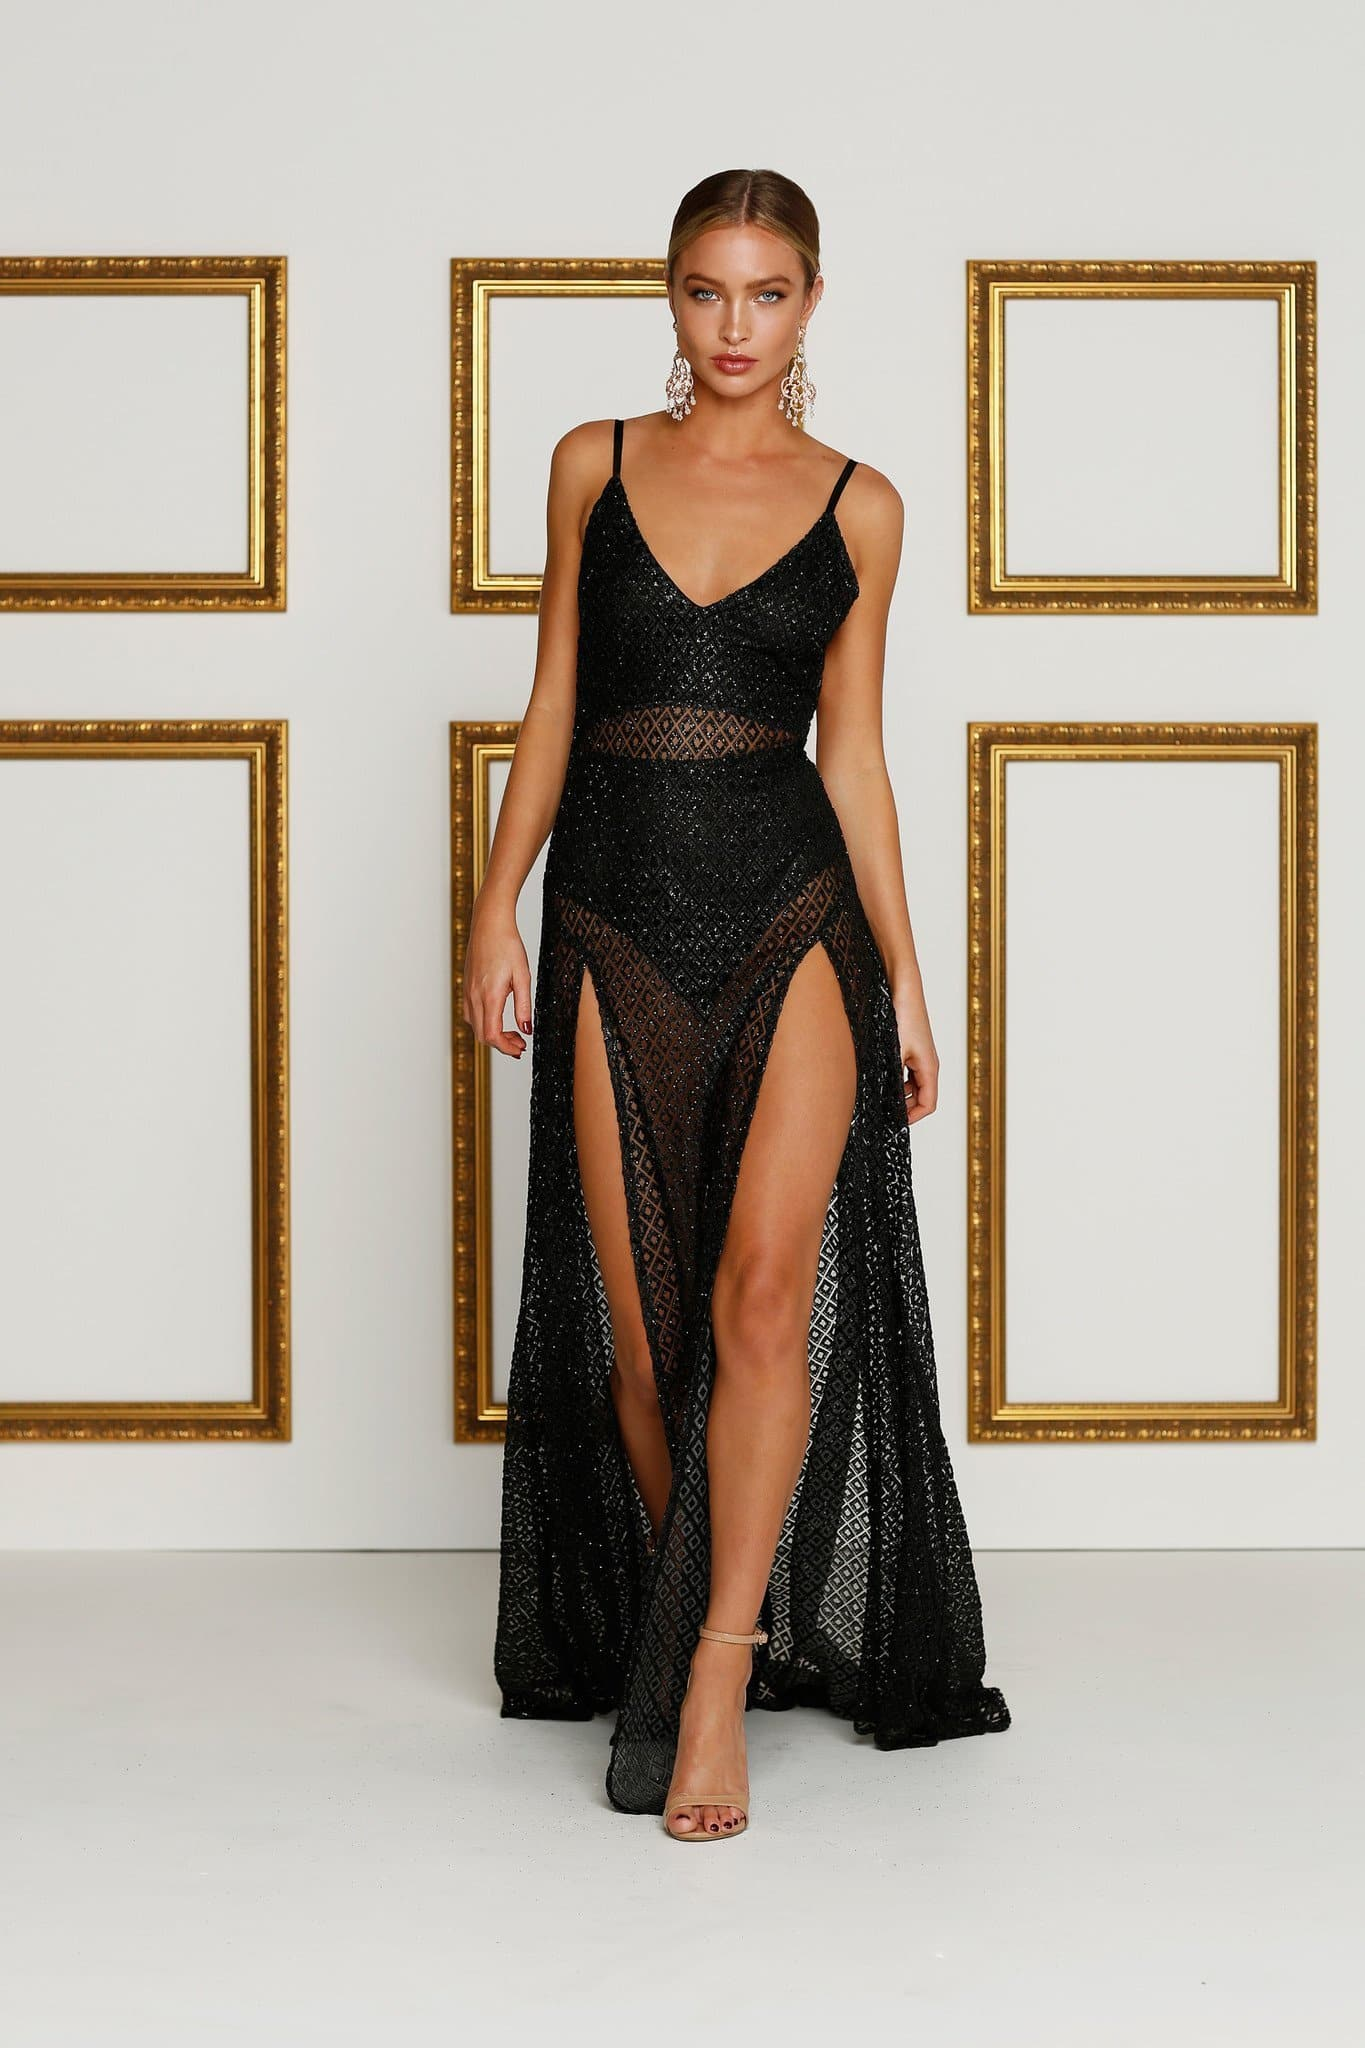 Rozay - Black Sheer Glitter Gown with Two Side Slits & Low Back